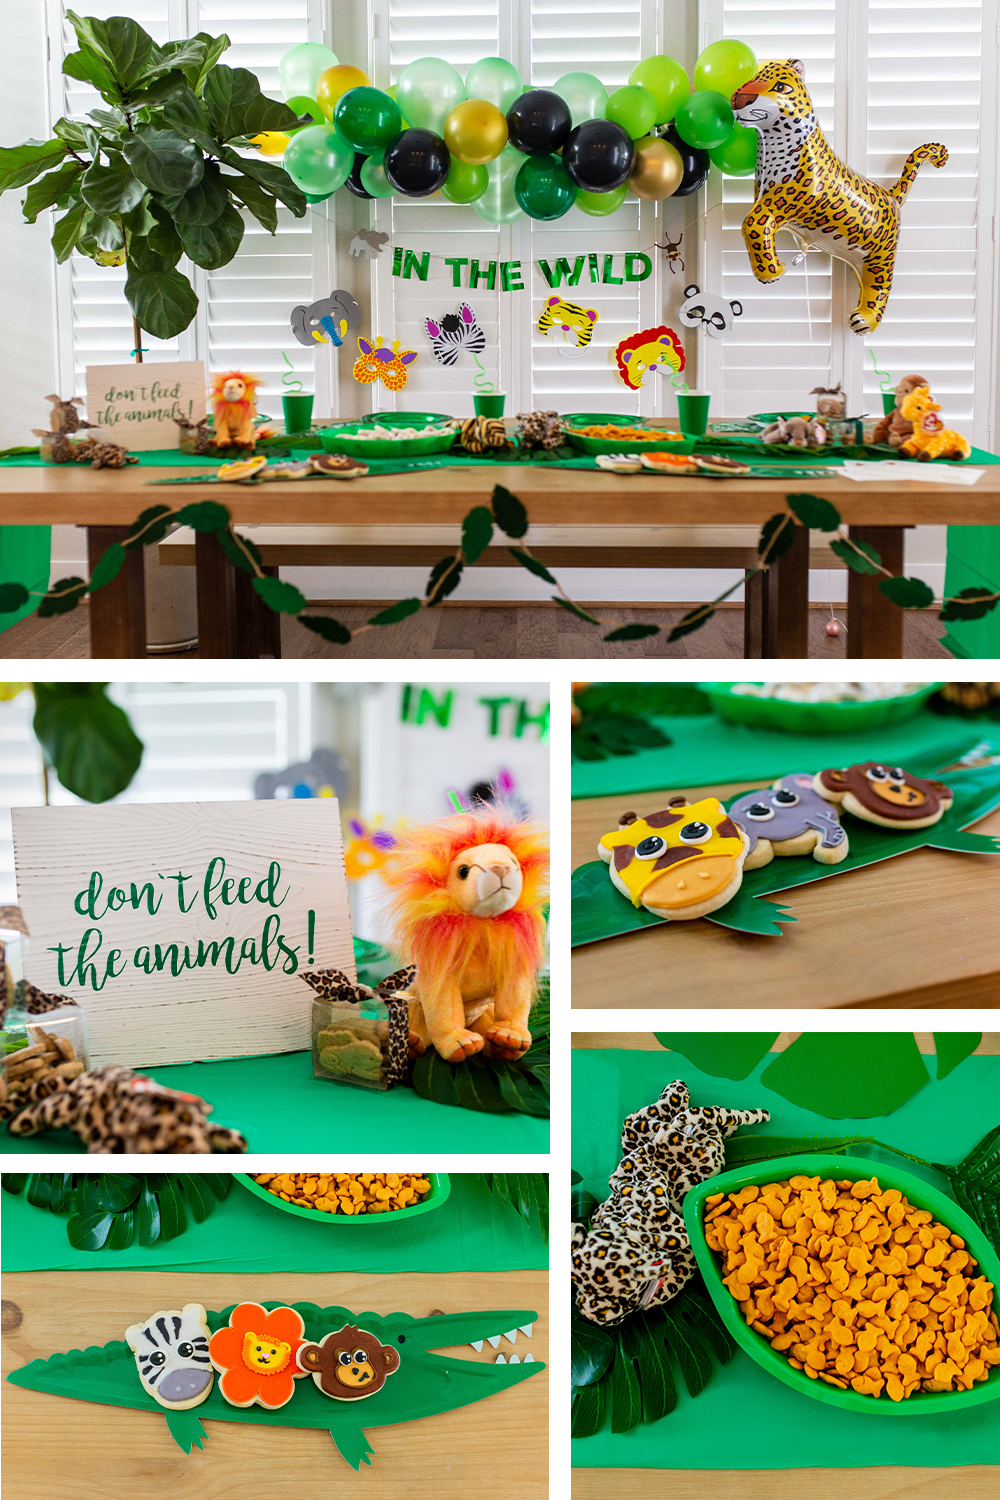 Children's jungle themed party lifestyle brand photography. Photo by Erin Reas based in Austin, TX